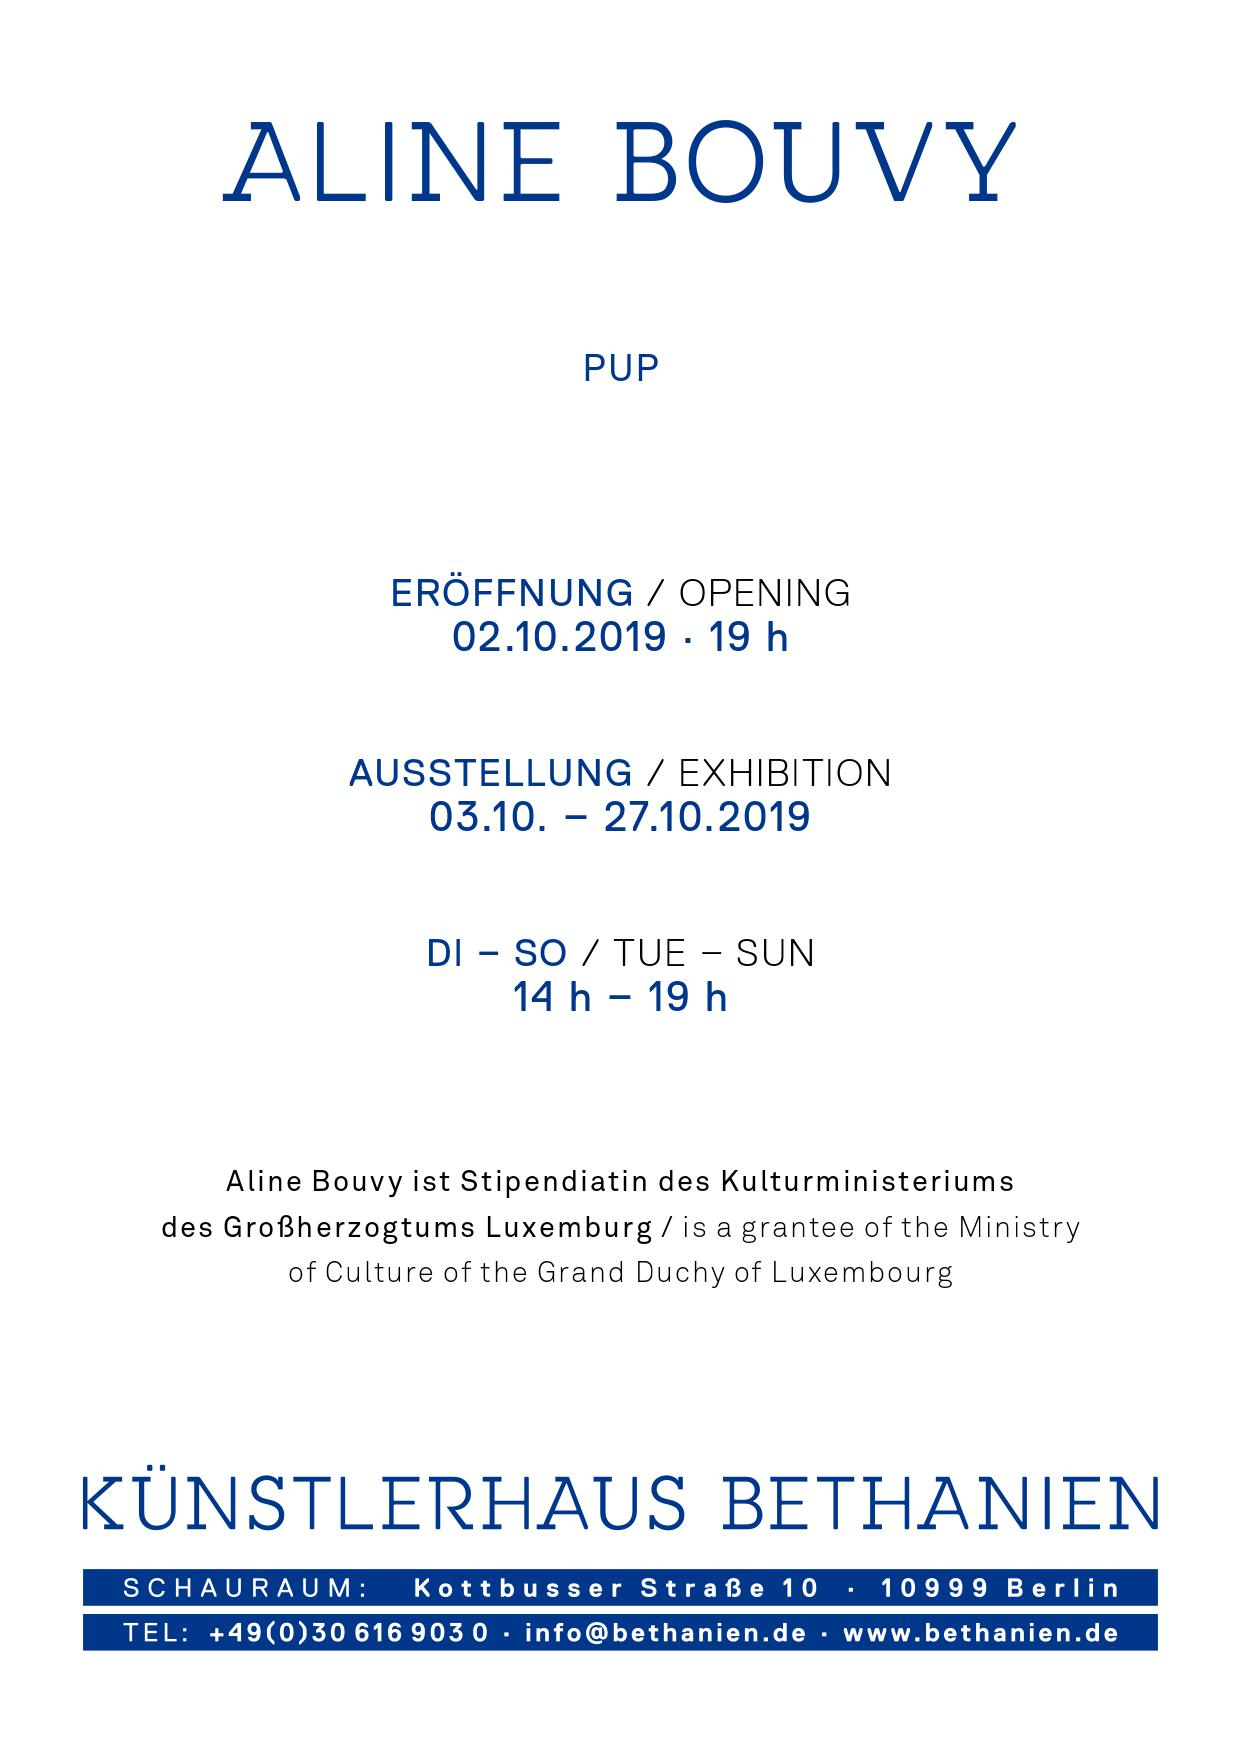 "Exhibition ""Pup"" by Aline Bouvy at Künstlerhaus Bethanien, Berlin (DE)"